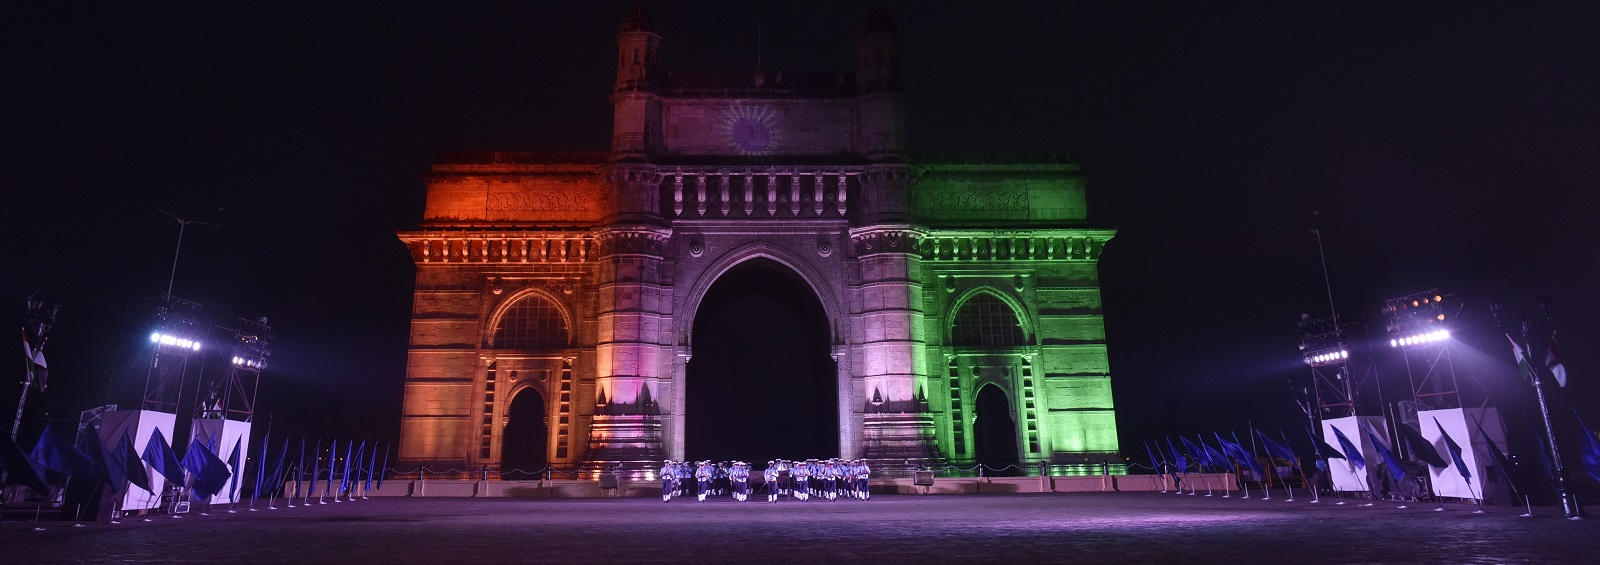 Gateway of India lit up for Navy Day, 4 December 2016 (Photo: Anshuman Poyrekar/Getty Images)